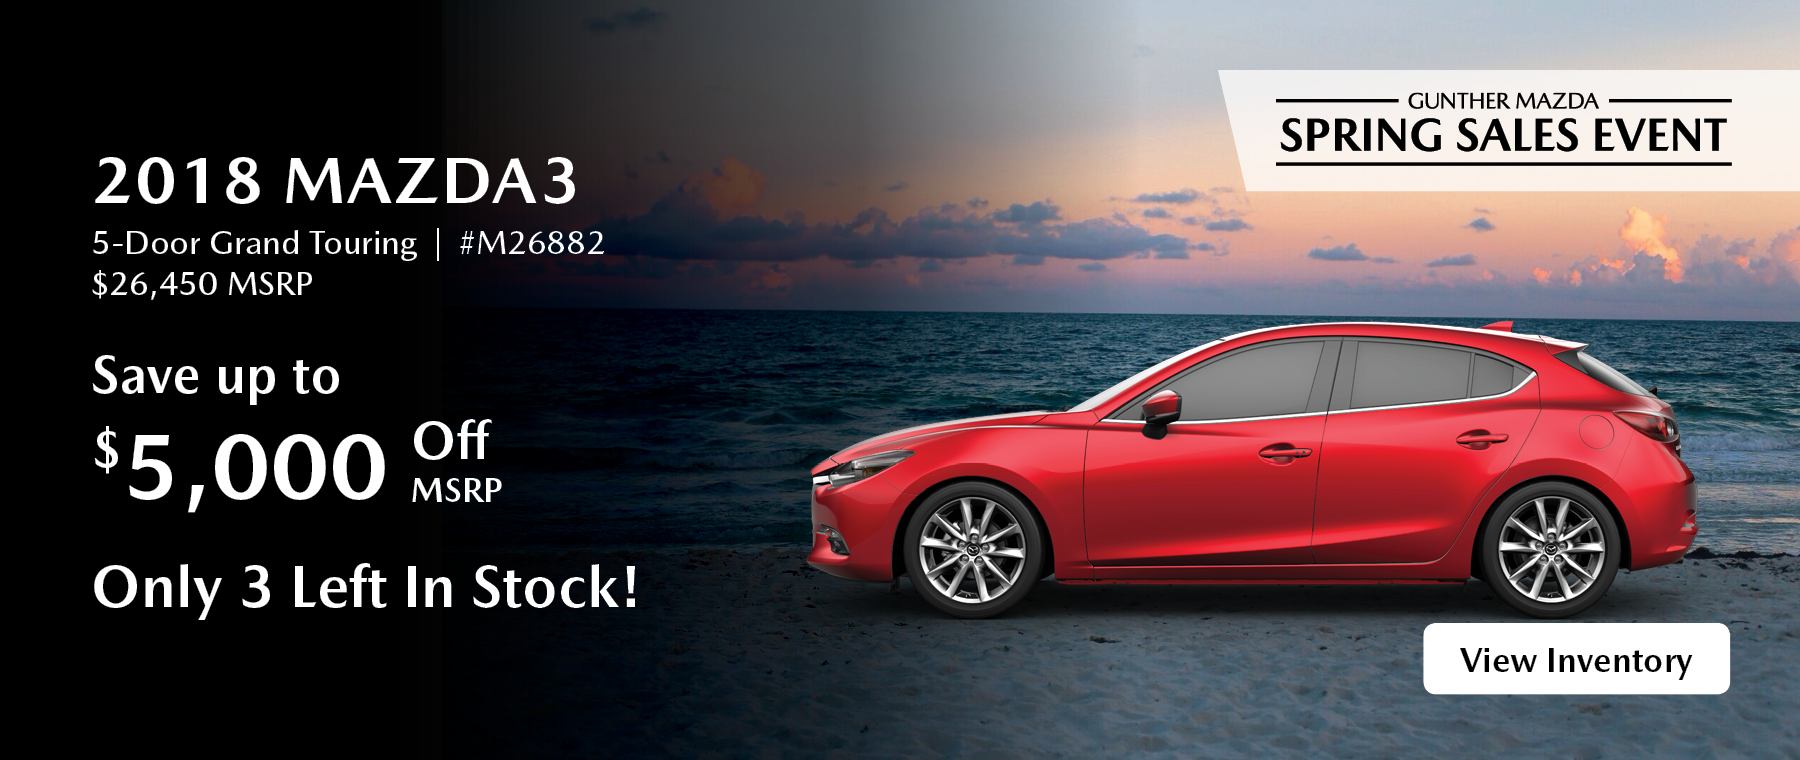 Save up to $5,000 off msrp on the 2018 Mazda3 5-Door Grand Touring.